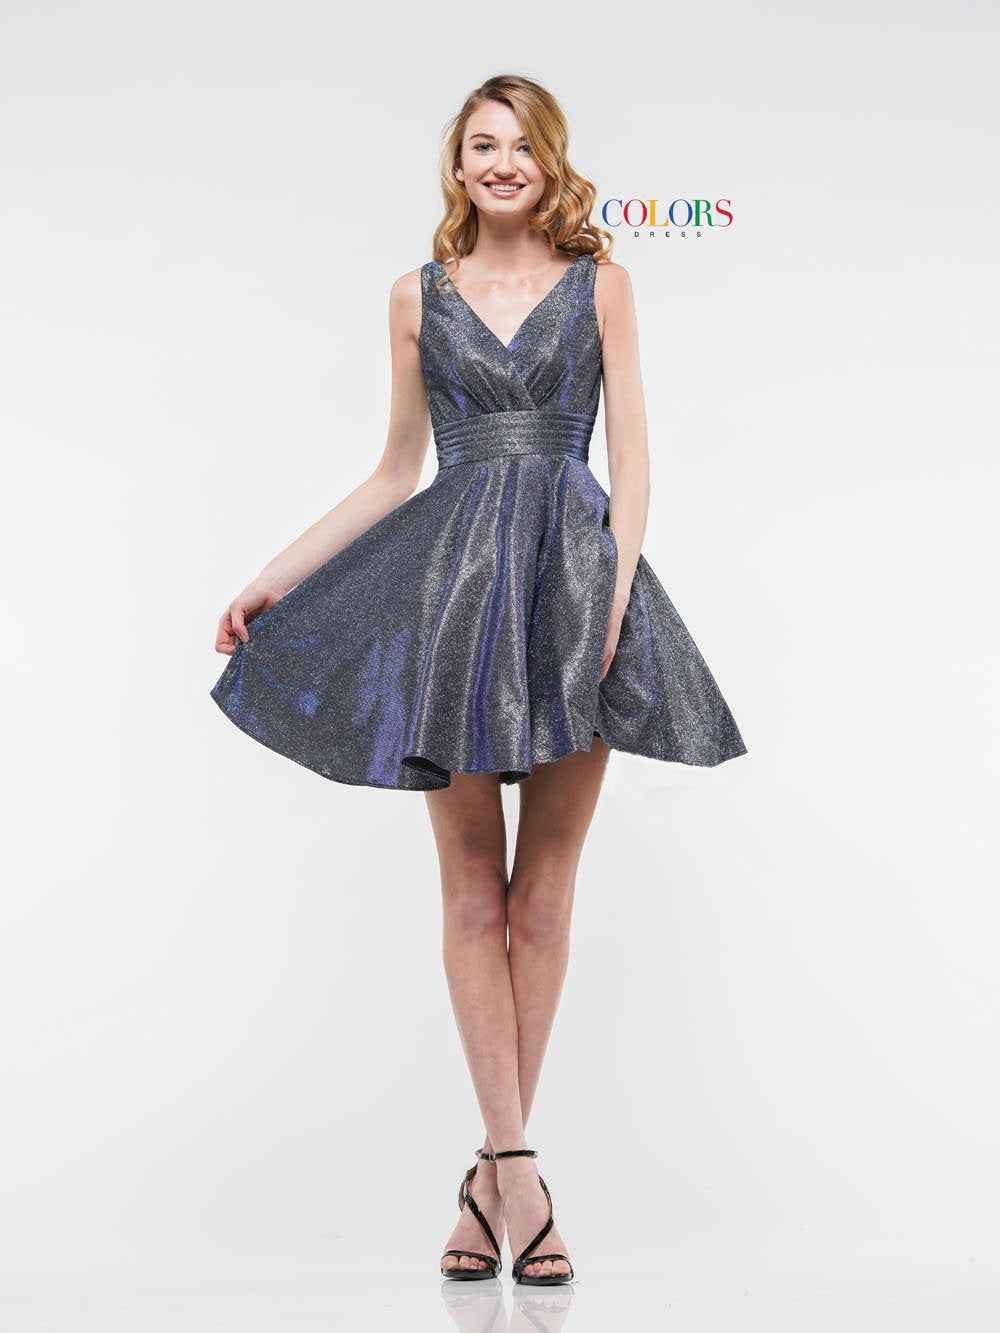 Colors Dress 2160 prom dress images.  Colors 2160 dresses are available in these colors: Lilac Multi, Royal Multi.